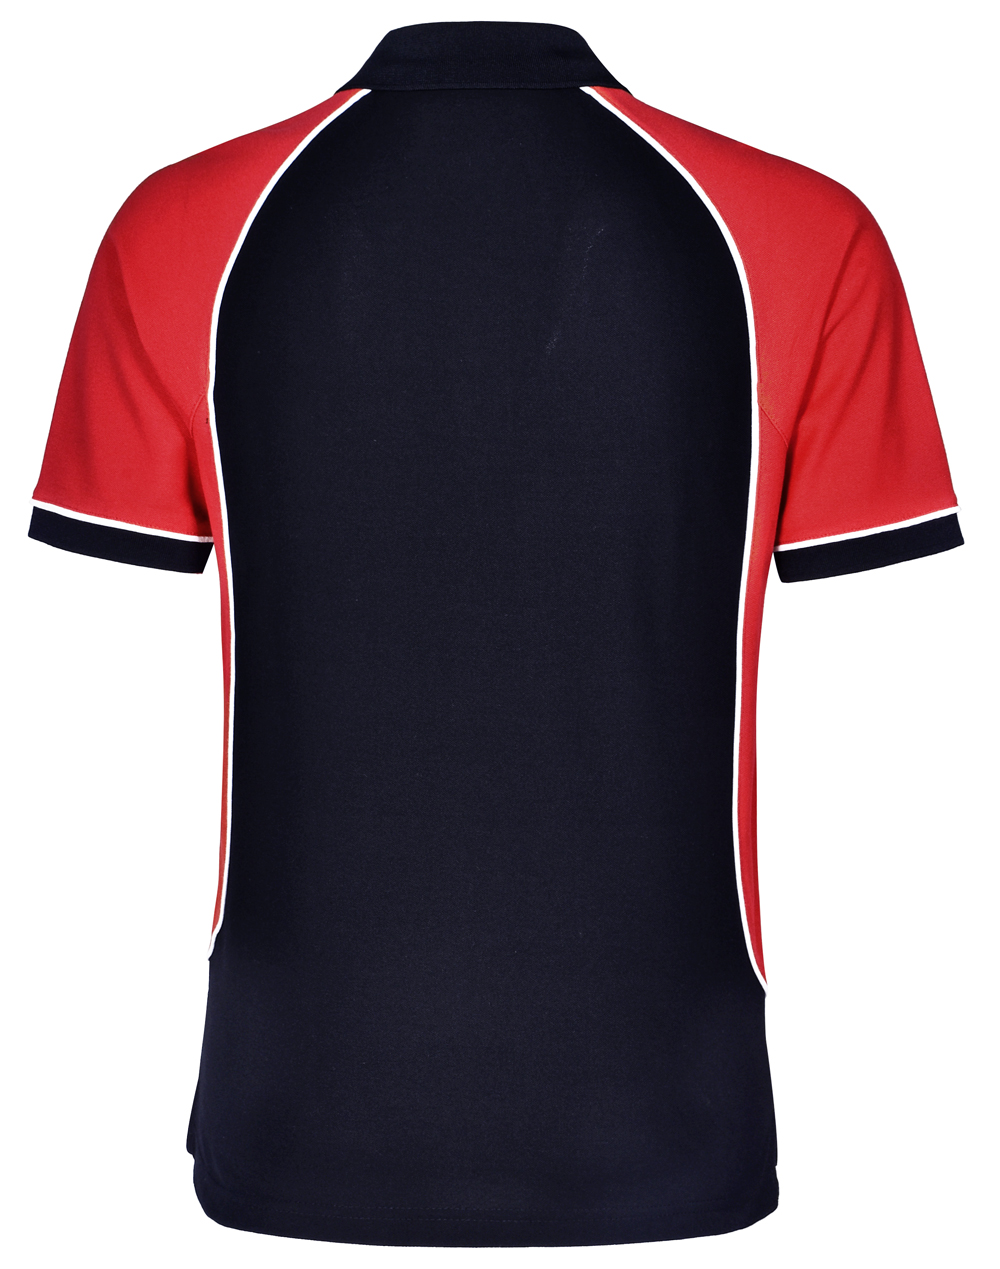 http://ws-imgs.s3.amazonaws.com/POLOSHIRTS/PS77_NavyWhiteRed_Back_l.jpg